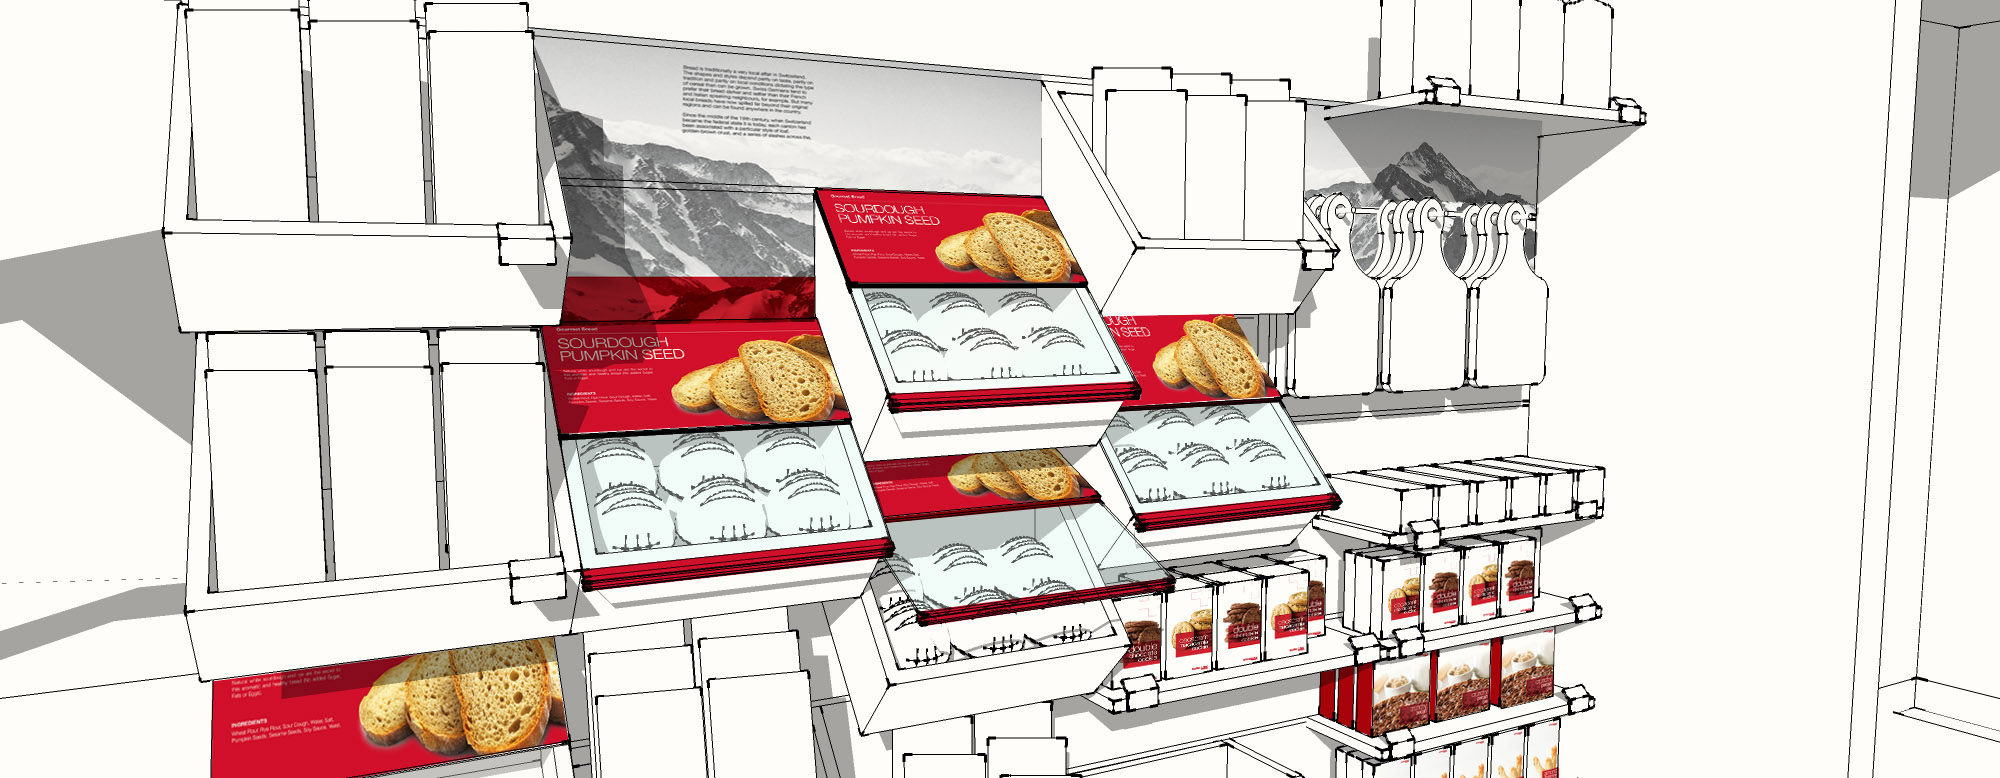 Visual merchandising: Along with the modular shelves and containers produced, Spinnaker's graphic design team developed a suite of product and brand aligned communications to convey Swissbake's brand values and aesthetics.